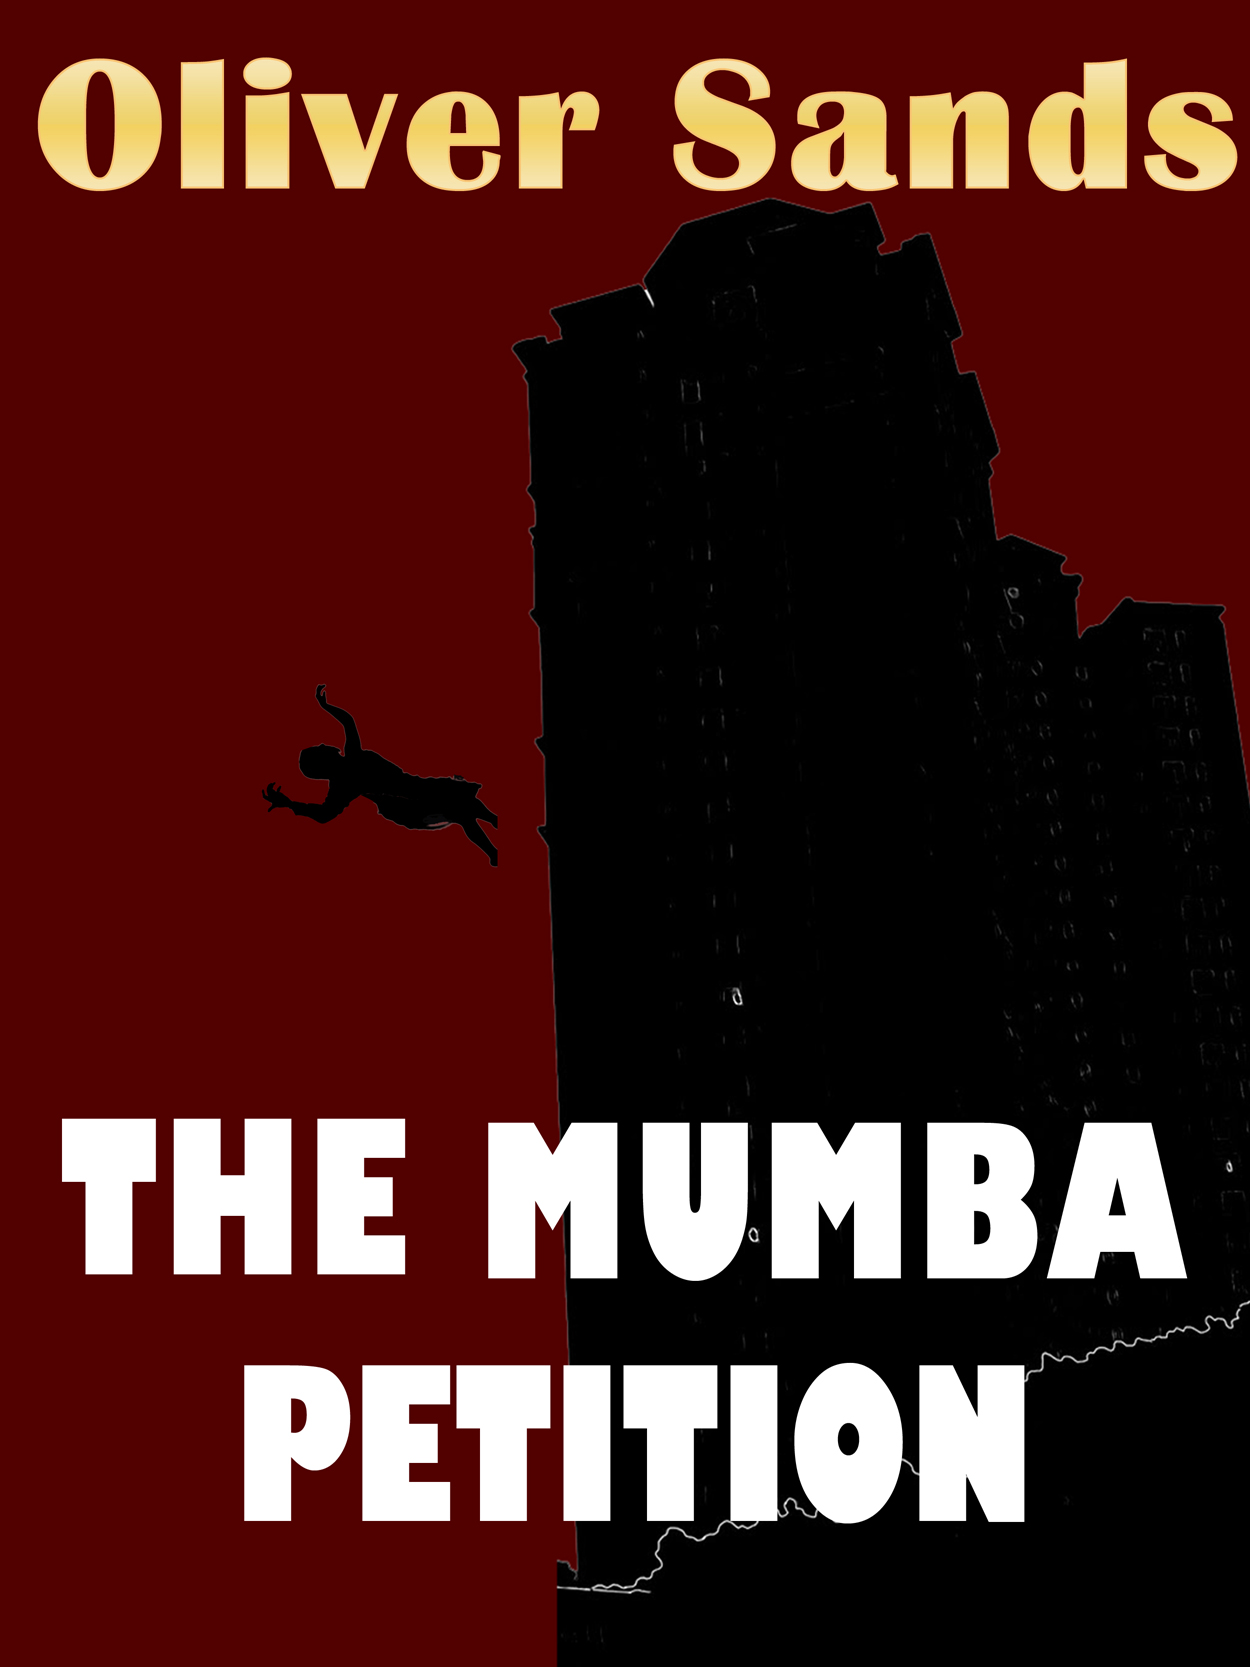 The-Mumba_Petition-medium